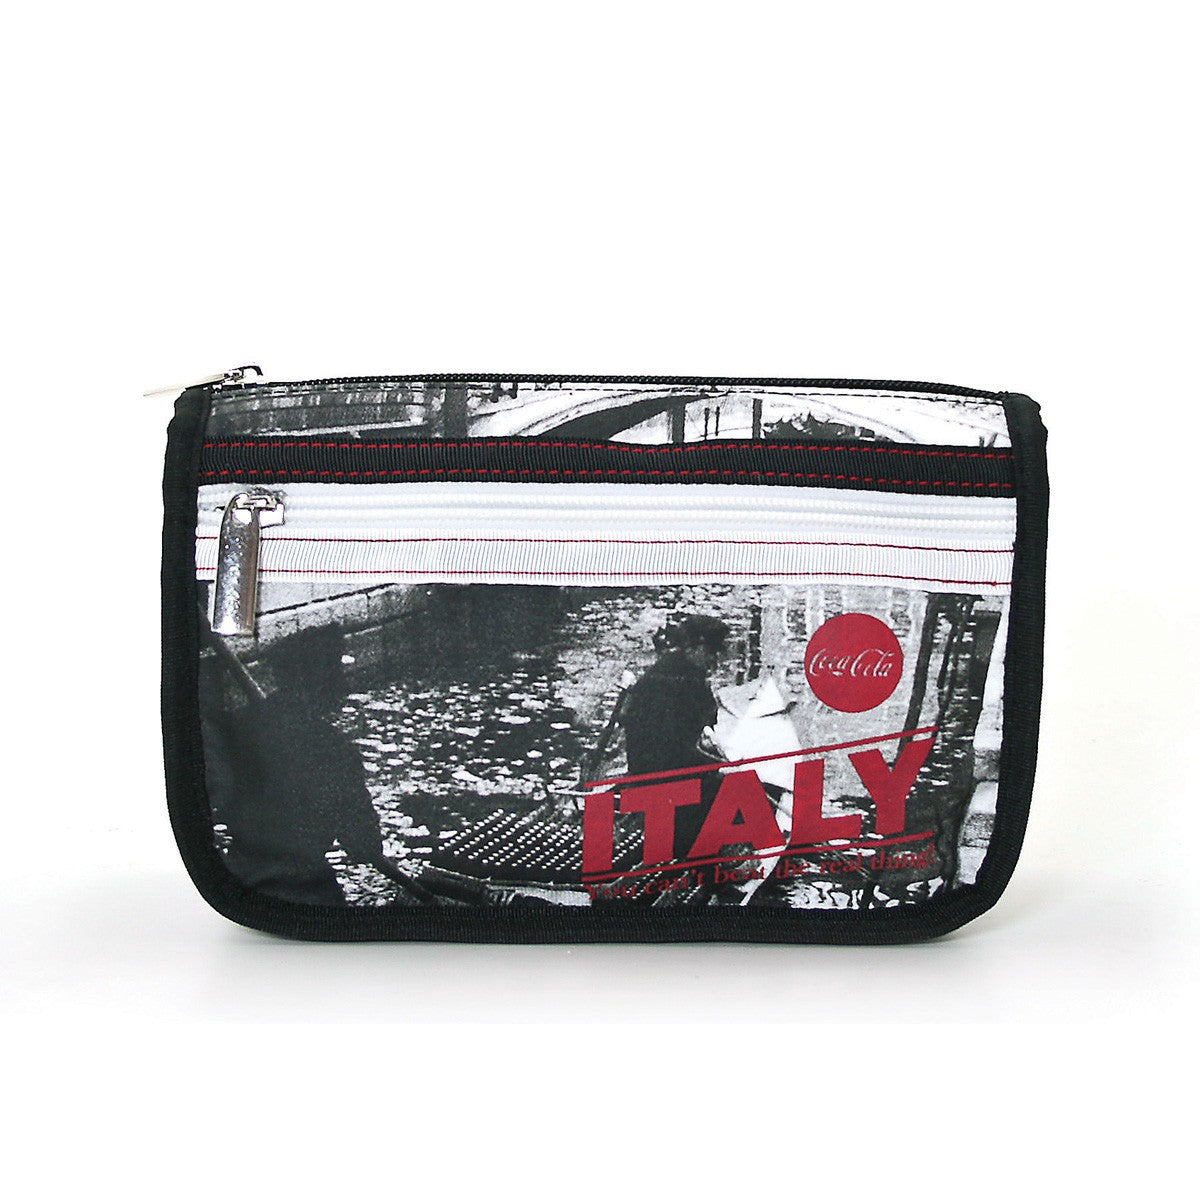 Officaillay Licensed Coca-Cola Nylon Cosmetic Bag - Italy